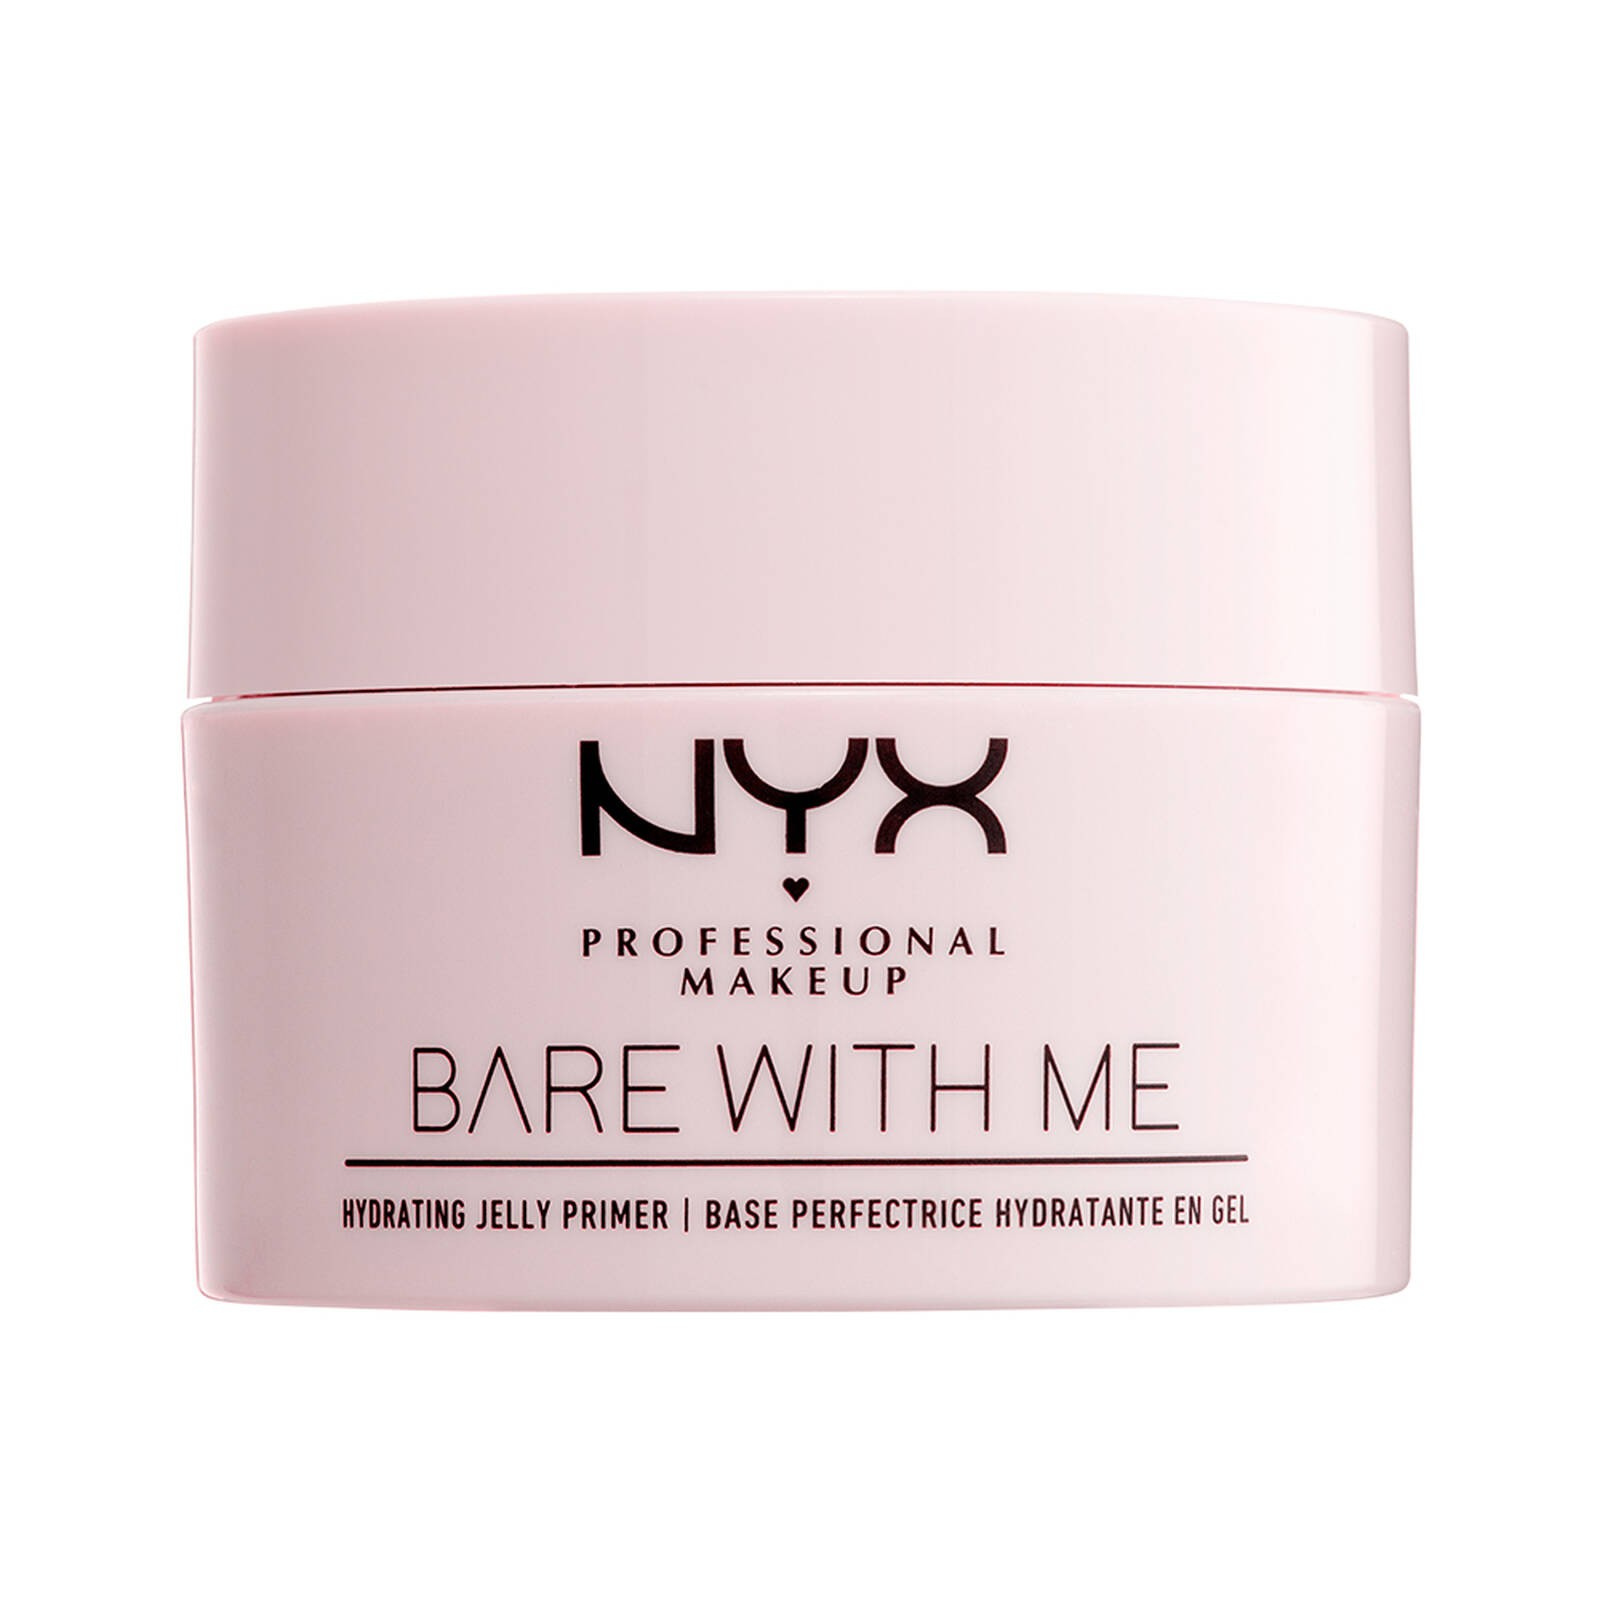 Gesichtsprimer - Bare With Me - Hydrating Jelly Primer